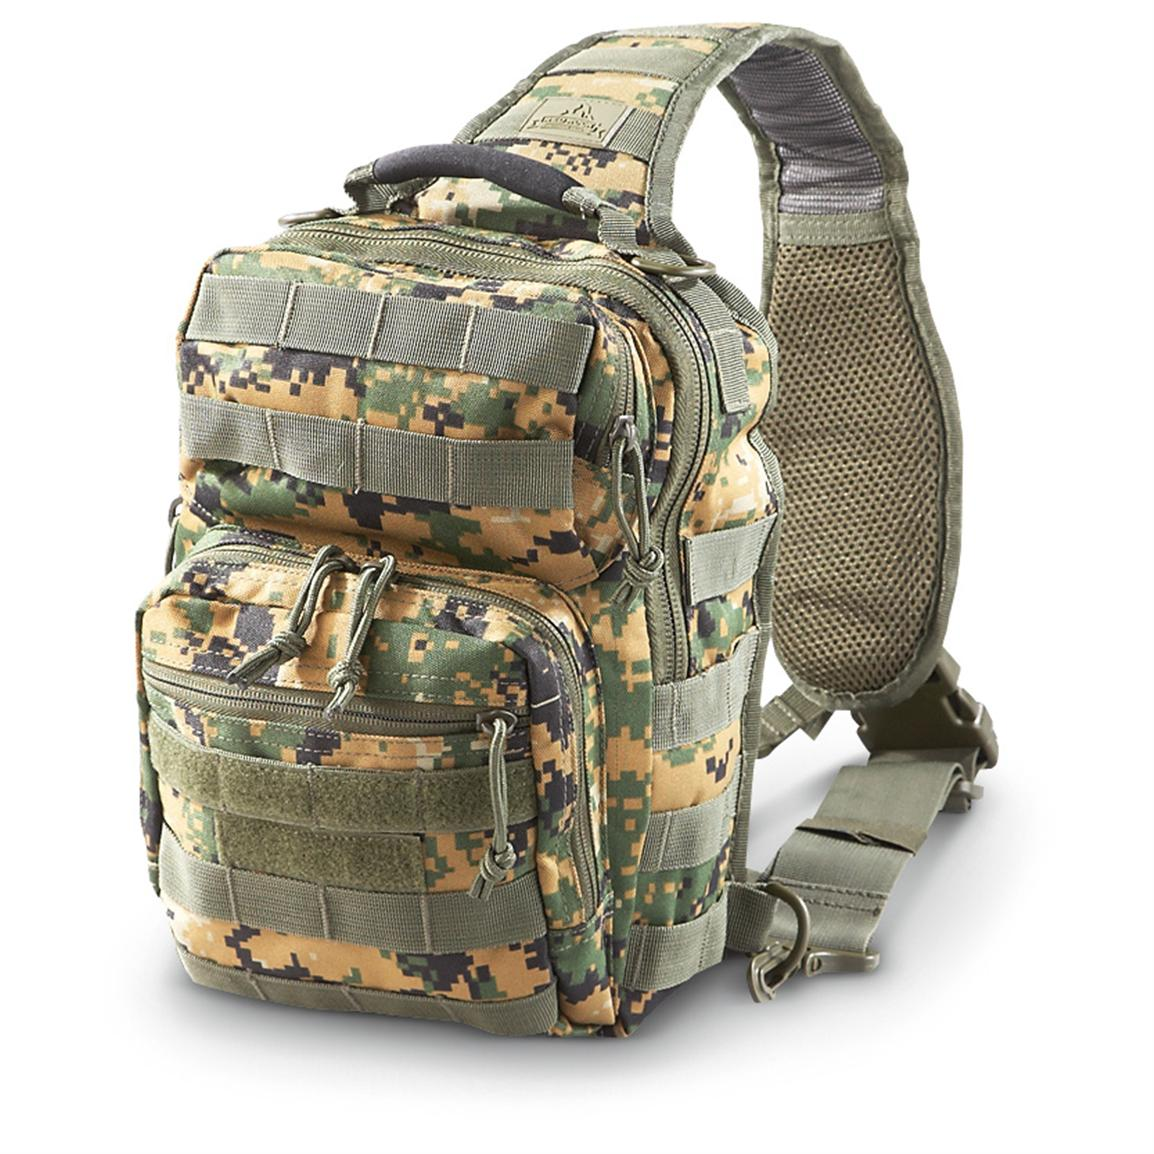 Stable, padded carry strap 315-cu. in. capacity, Digital Woodland